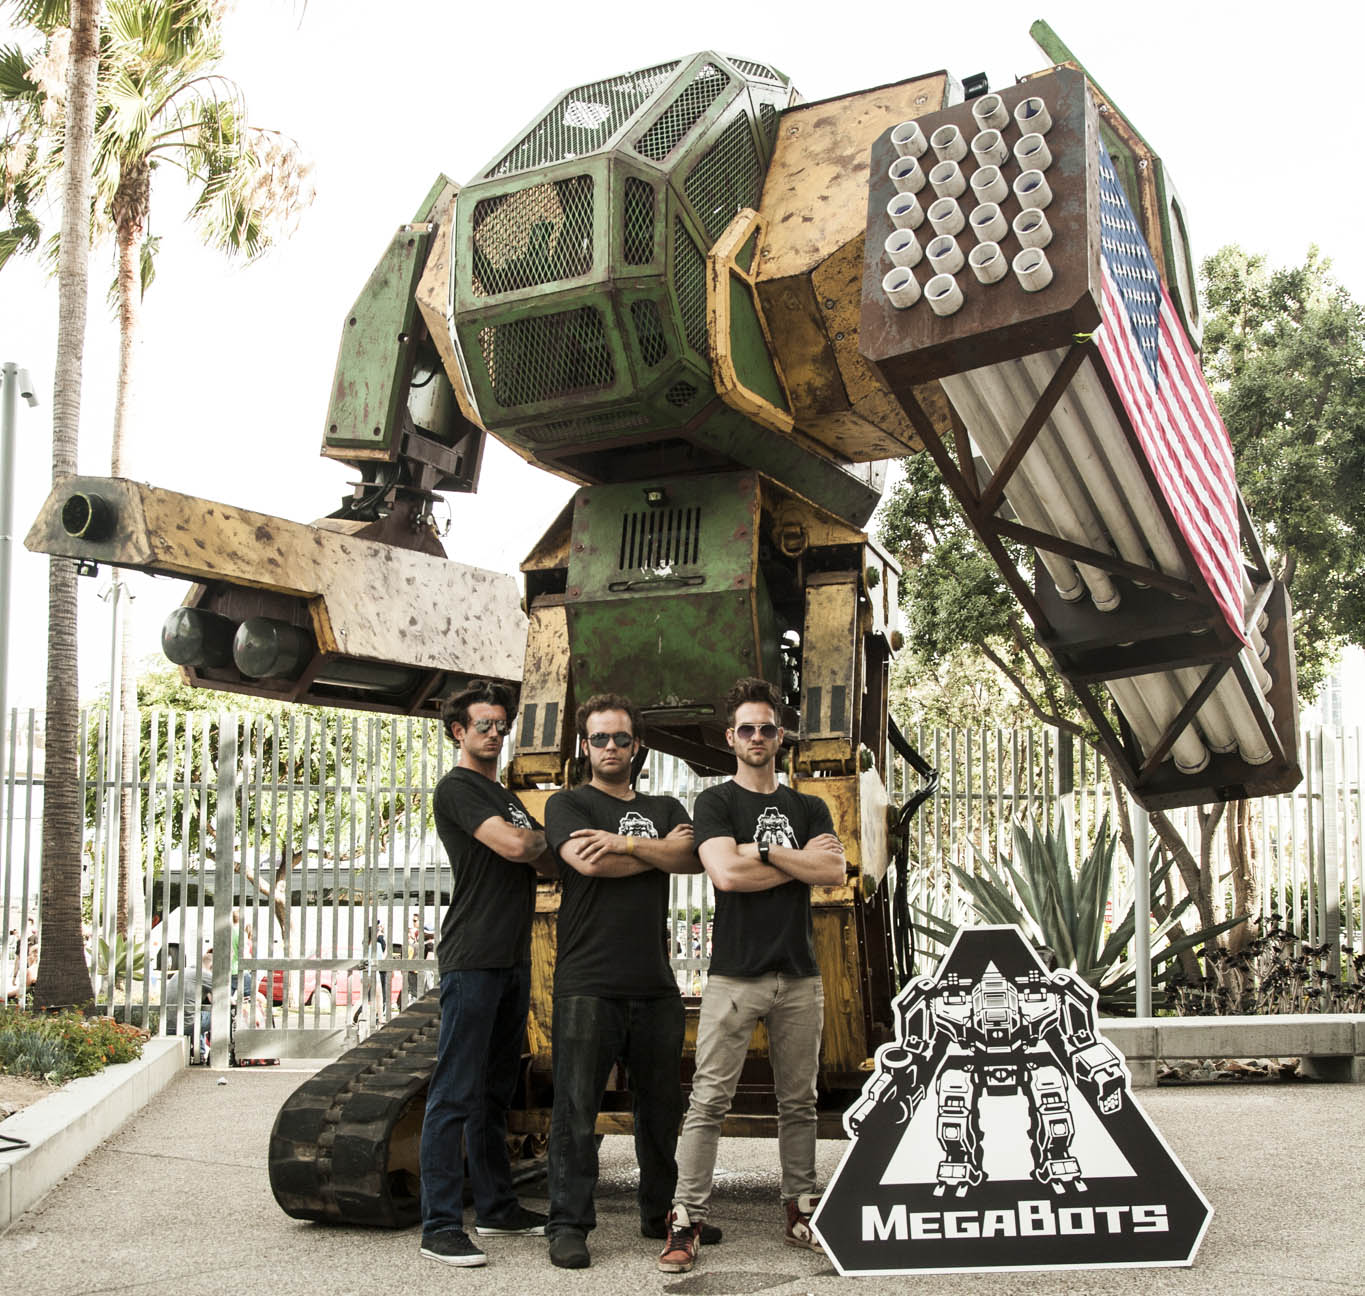 NASA And MegaBots Team Up To Build Giant Fighting Robots